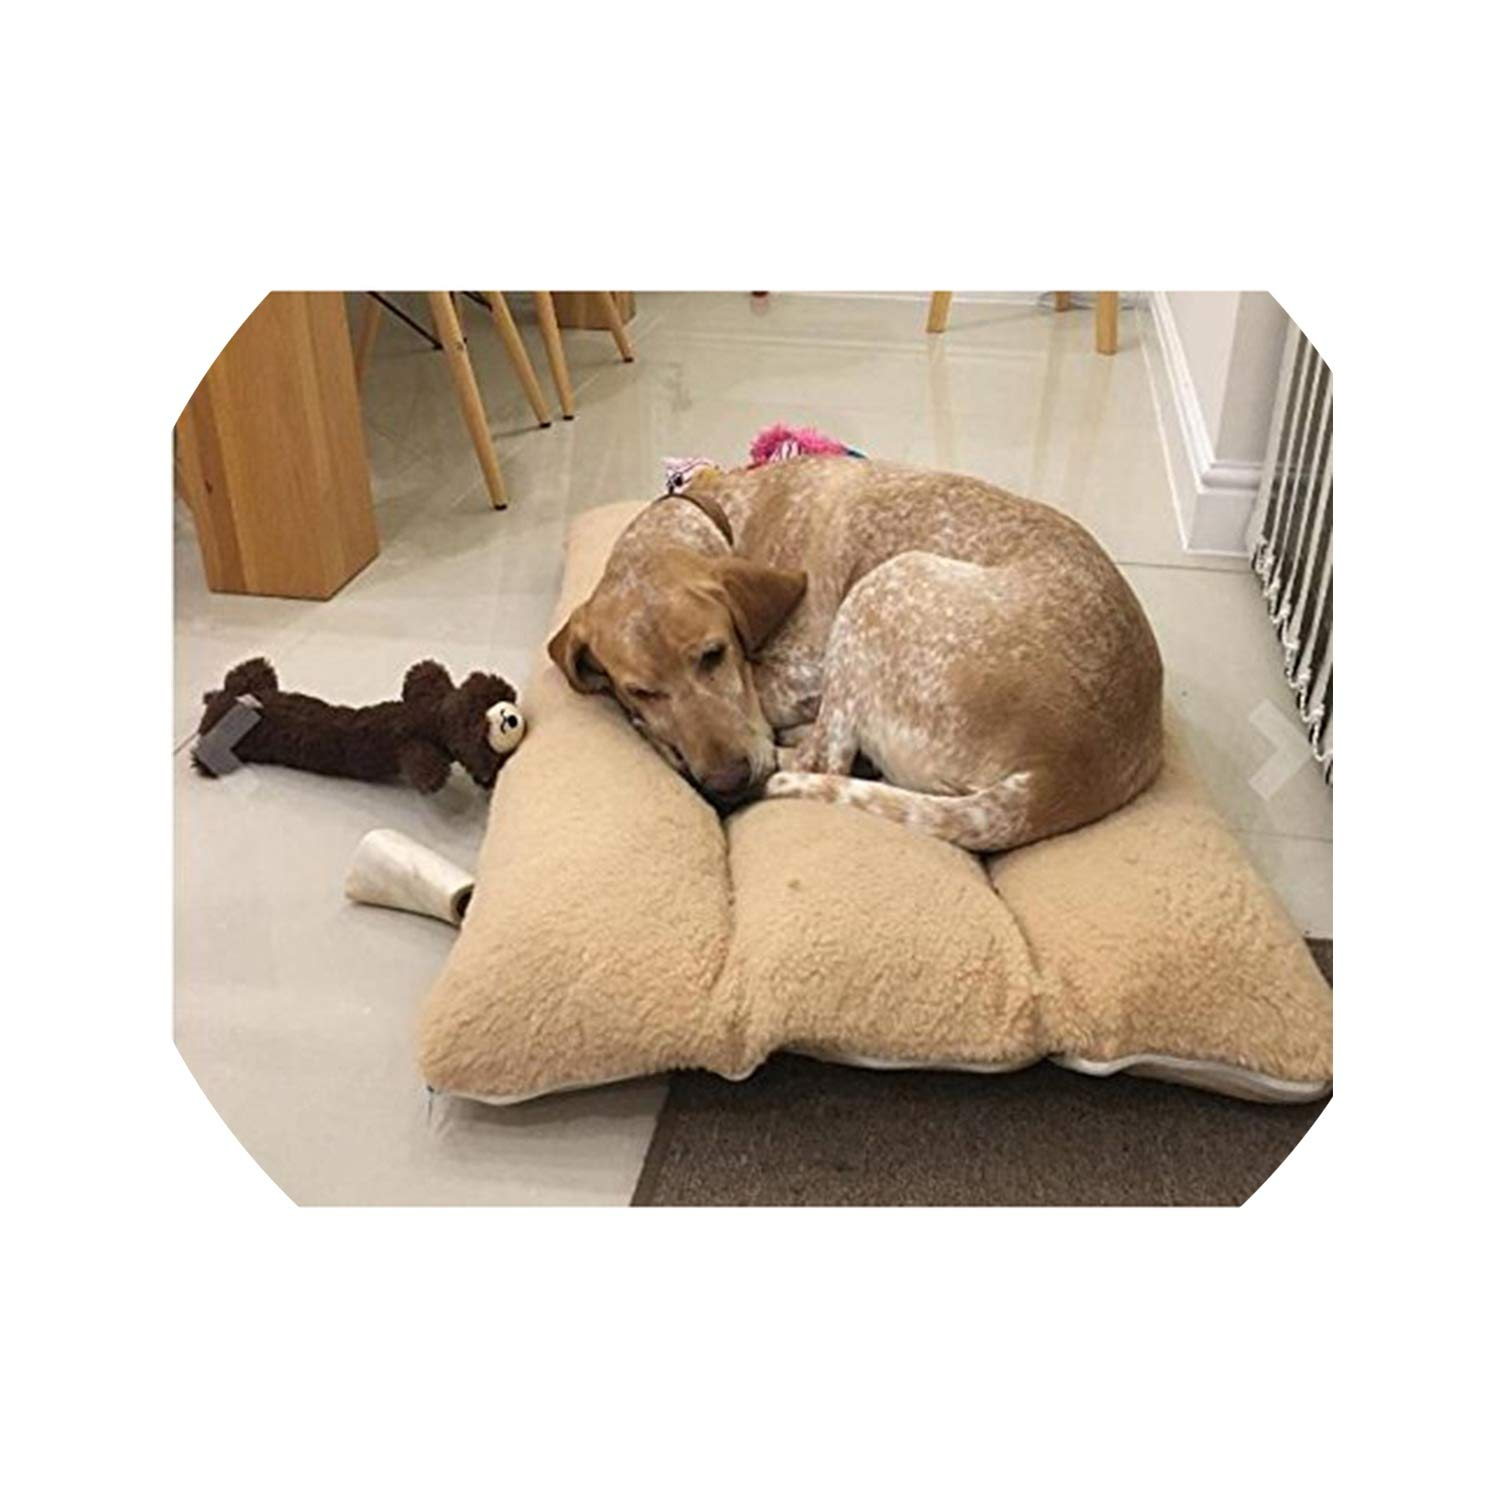 Fanjie's Department store Removable Cover Pet Mats Solid Soft Pet Blanket for Small Medium Dog Include 3 Pieces Cotton Part Pillow Shape Dog Bed,Yellow,120X80Cm by Fanjie's Department store